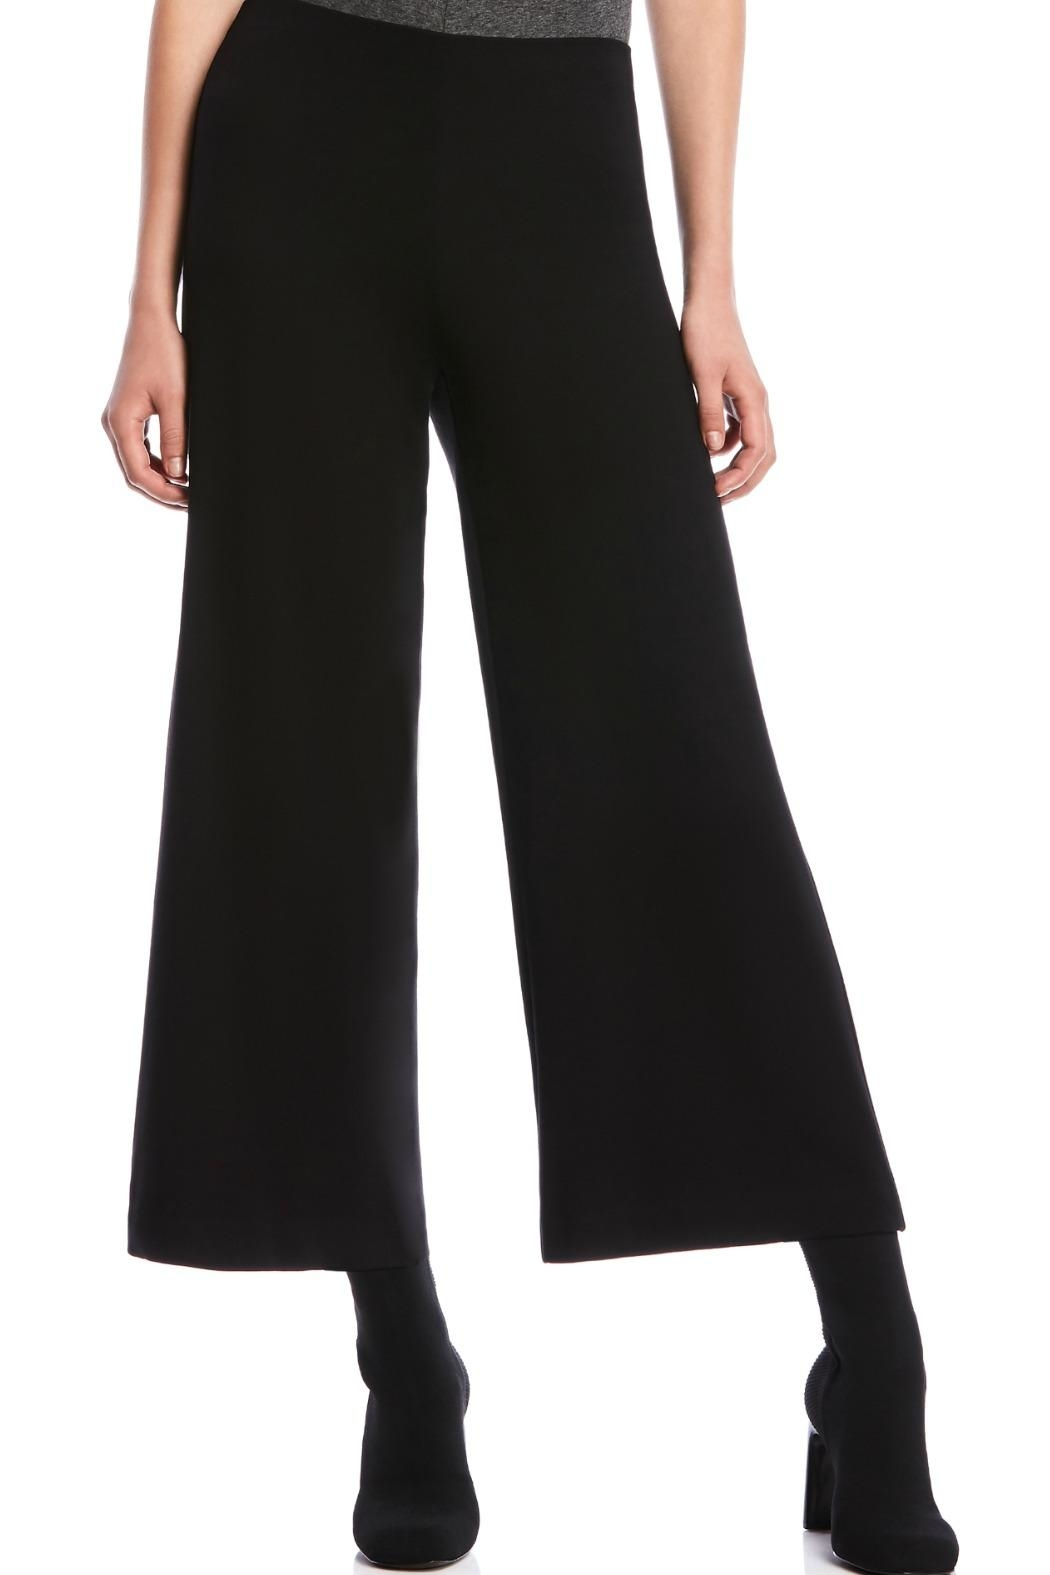 Bailey 44 Lizzie Crop Pant - Main Image